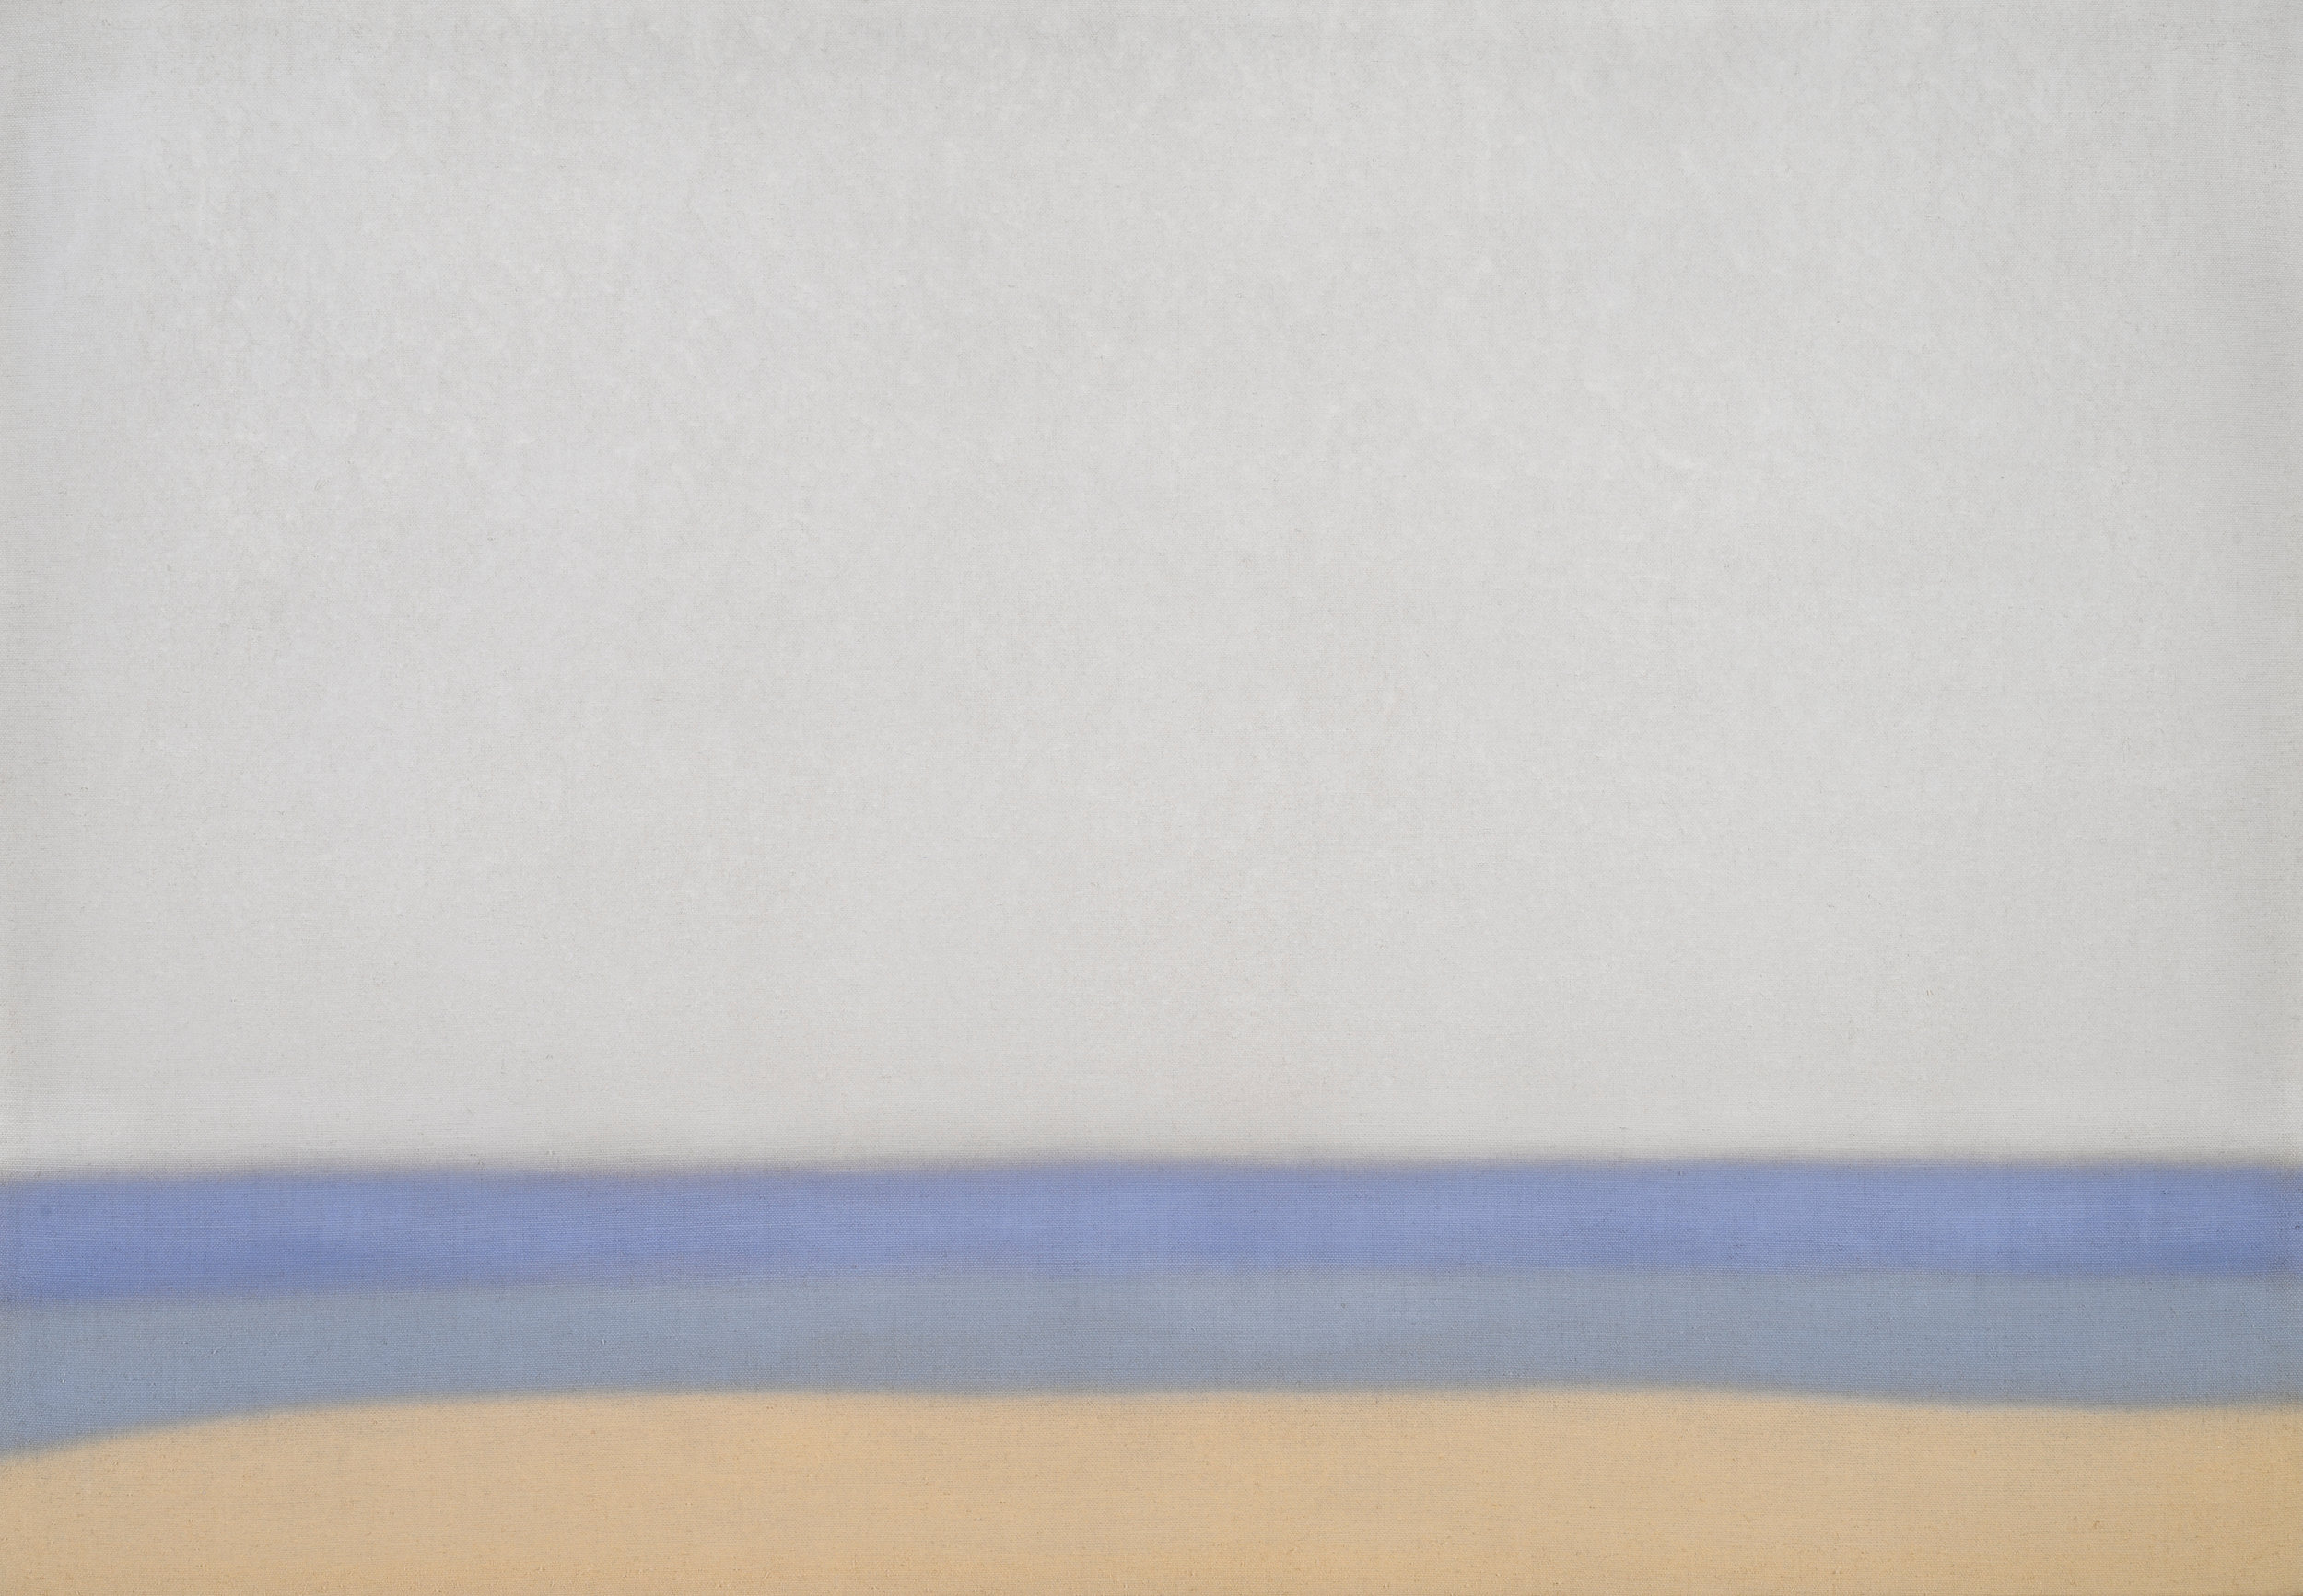 """Susan Vecsey, Untitled (Blue / Gold), 2019. Oil on Linen, 40"""" x 58""""."""